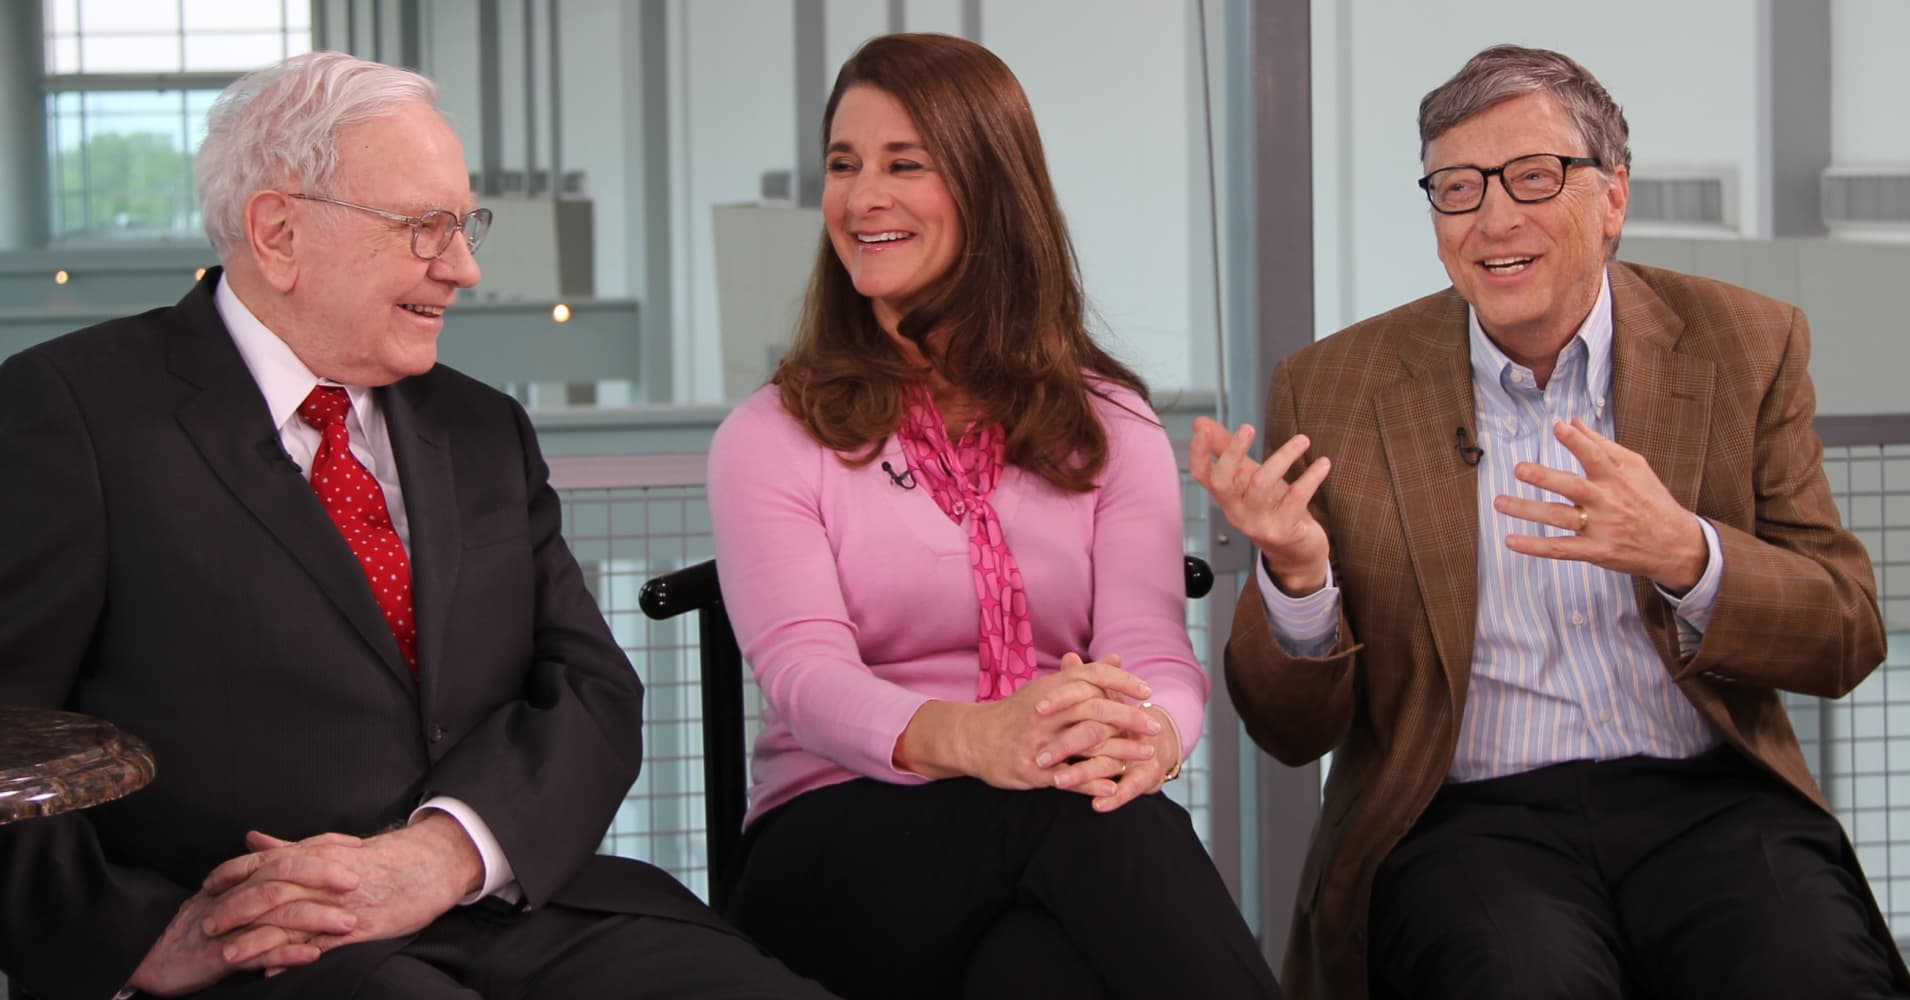 Warren Buffett, Melinda and Bill Gates discuss philanthropy.